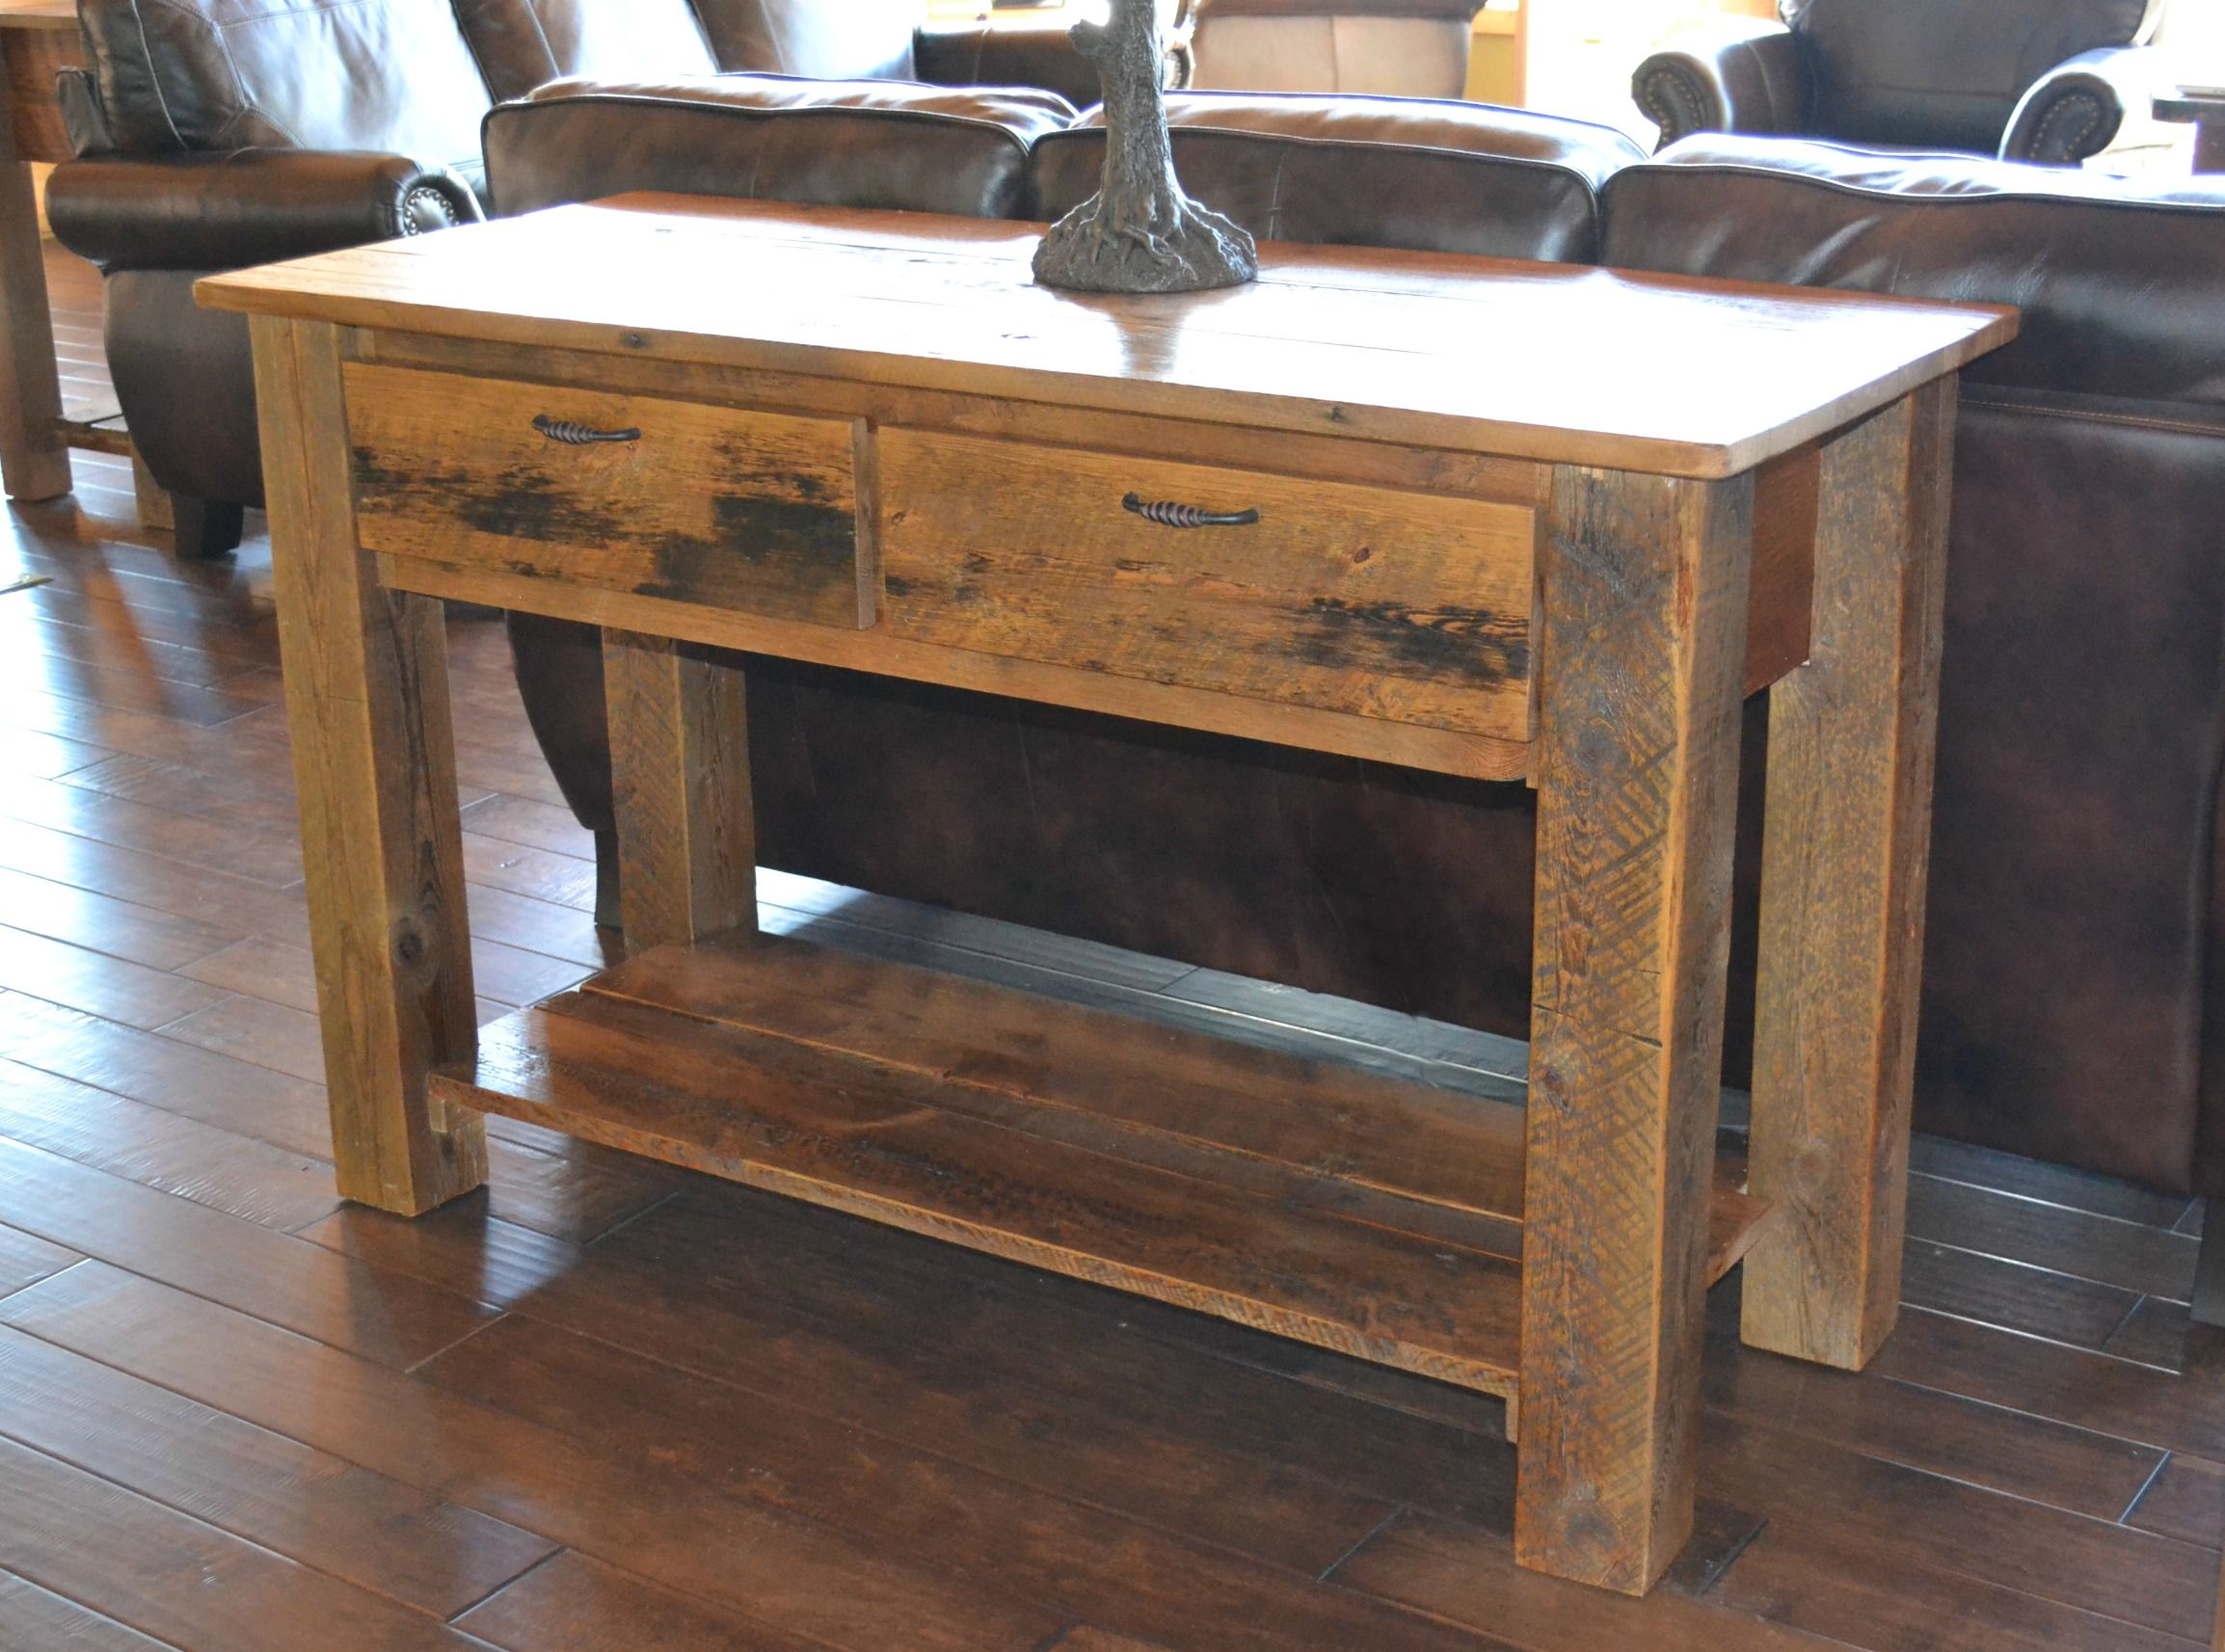 Reclaimed Barn Wood | Reclaimed Barn Wood Furniture | Rustic ...